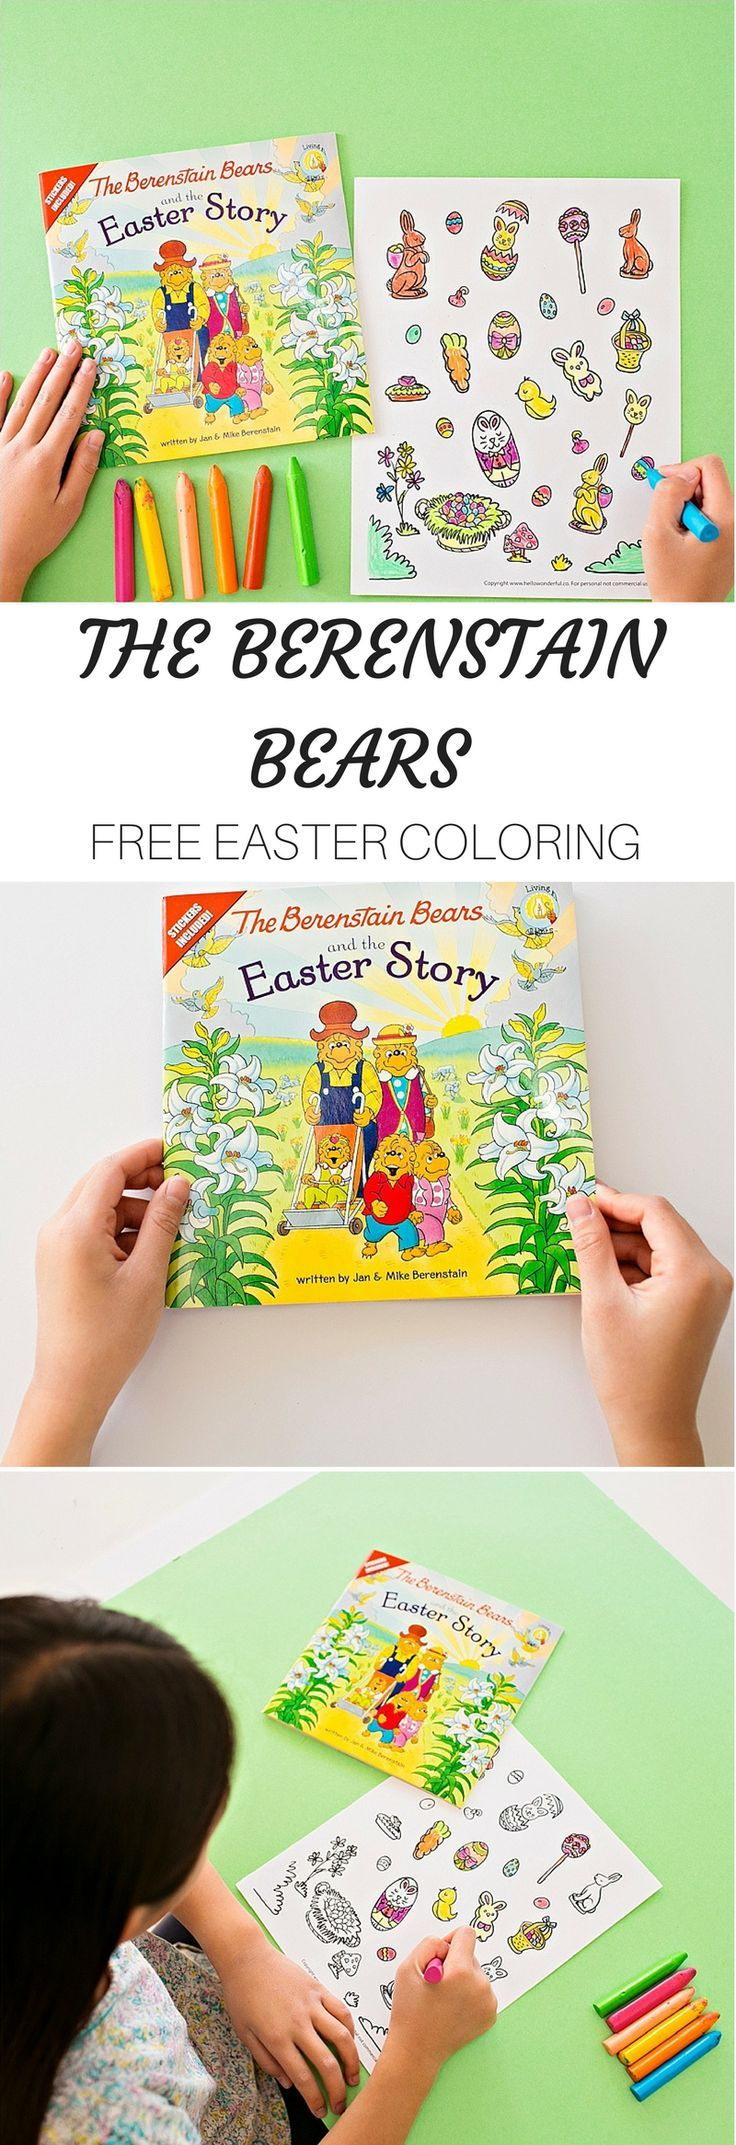 THE BERENSTAIN BEARS EASTER STORY COLORING SHEET | Easter coloring ...